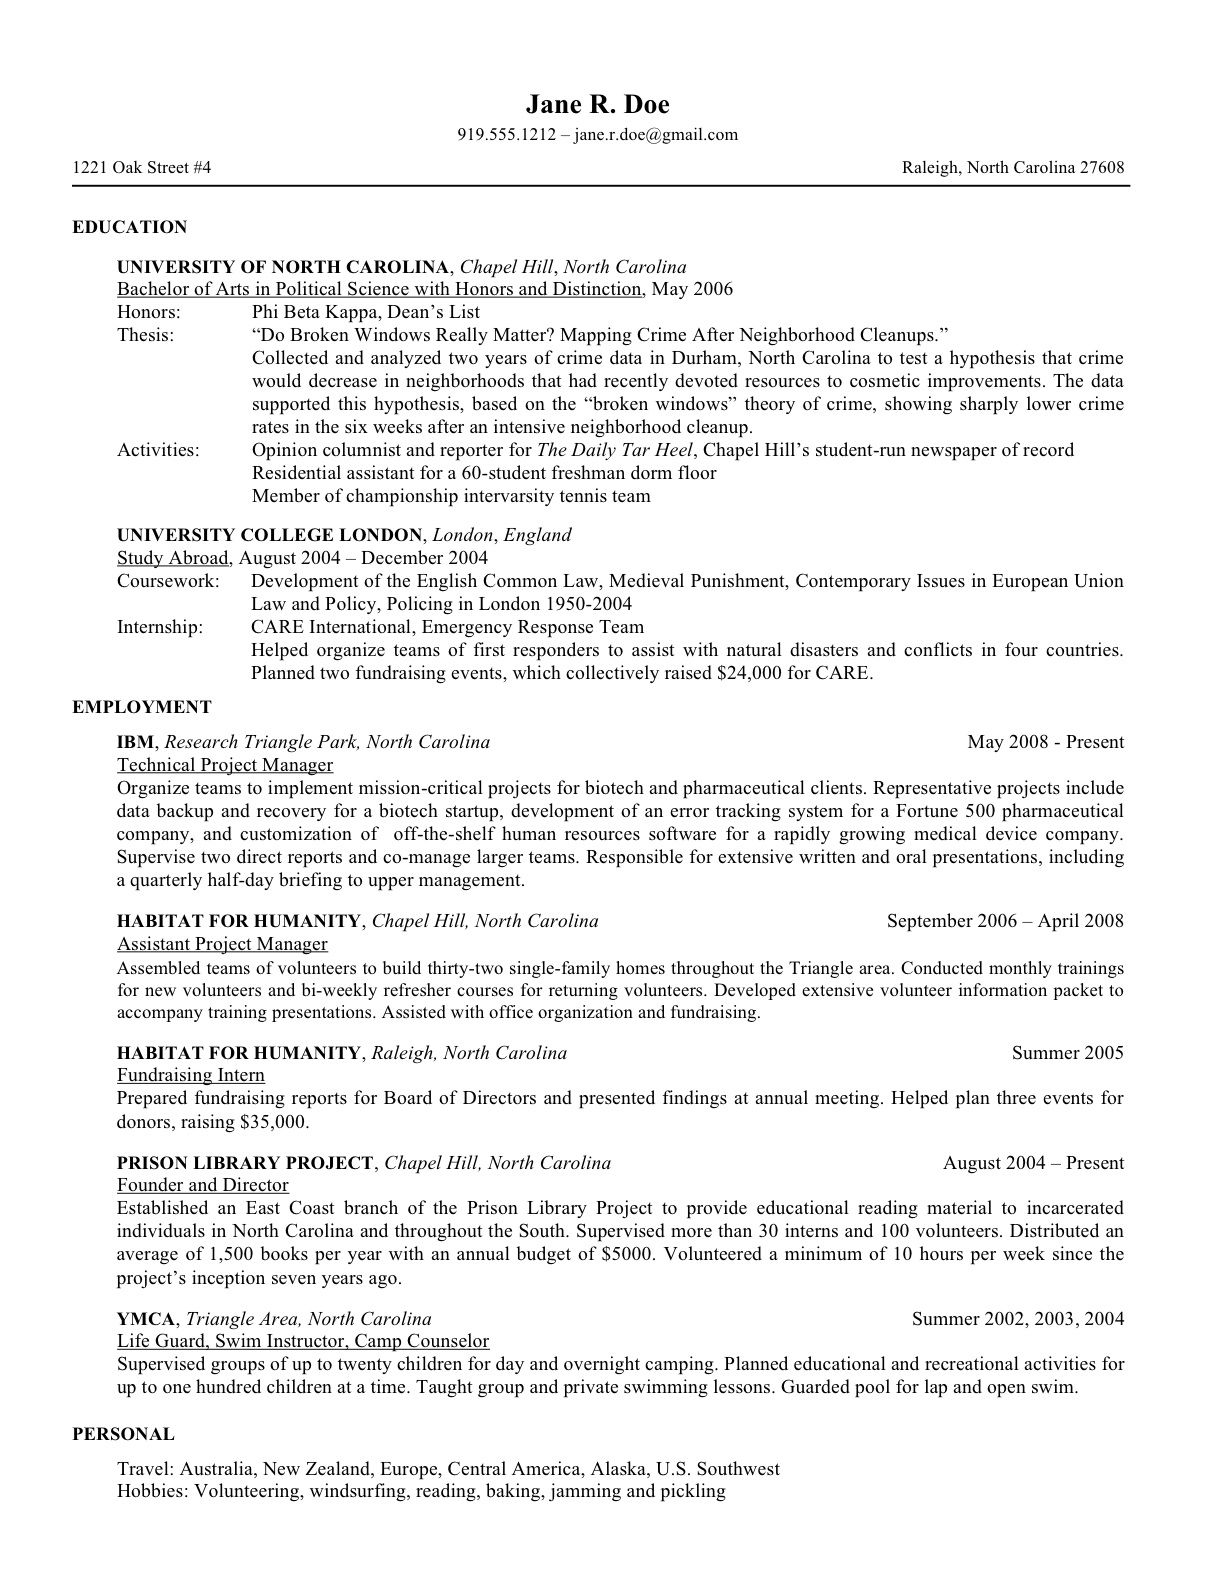 Trial Lawyer Cover Letter. Family Lawyer Cover Letter. Family ...